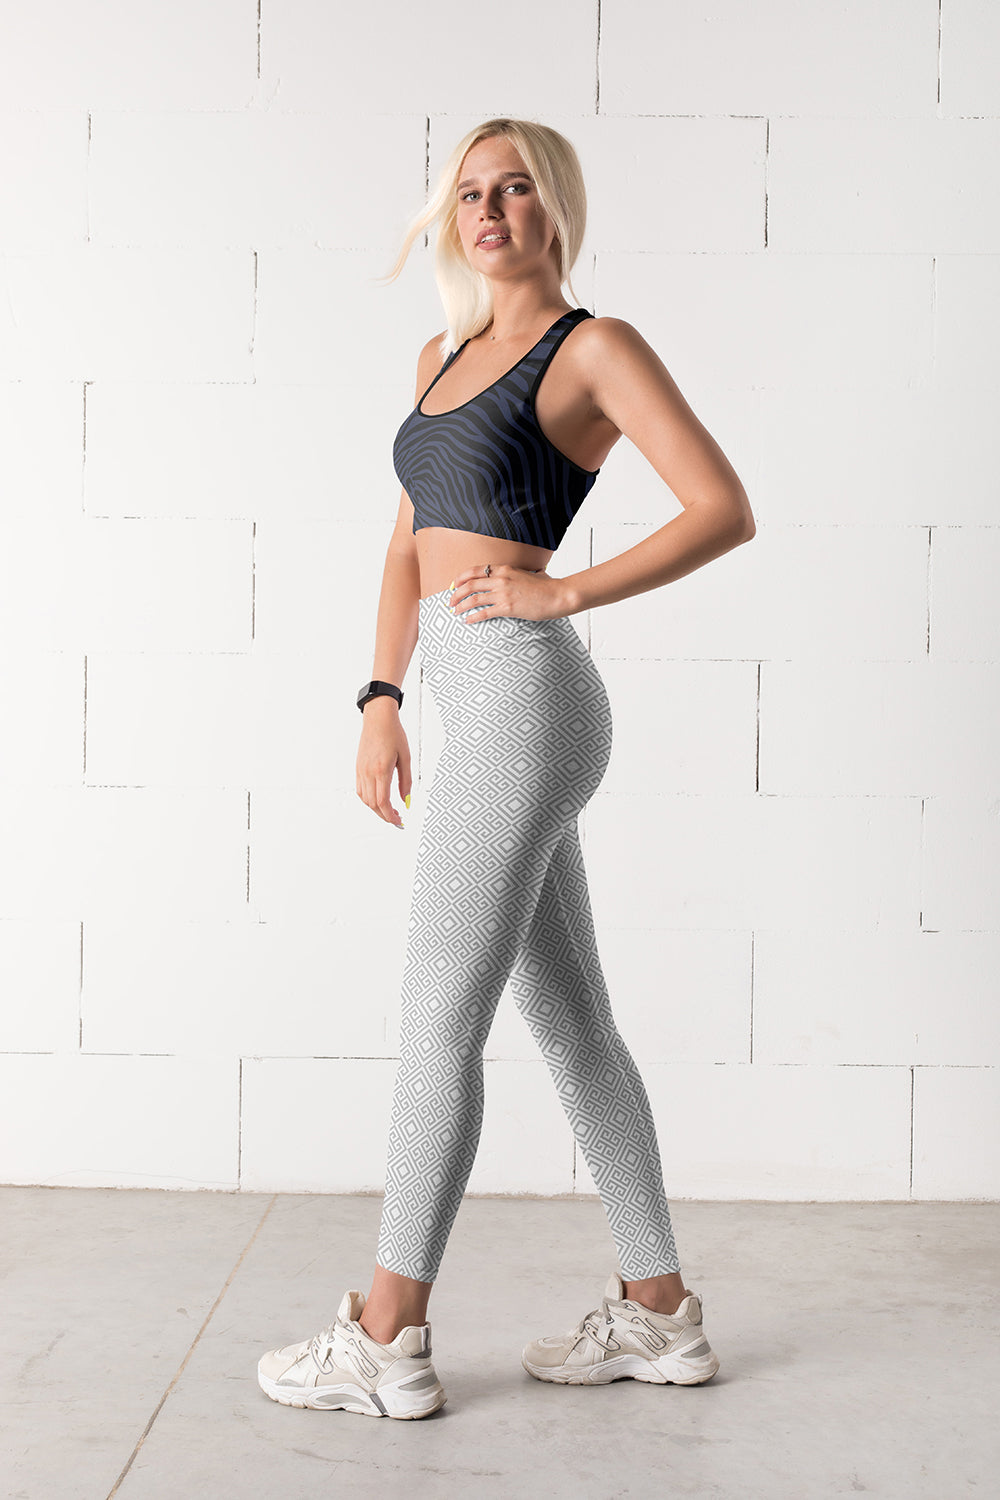 clarity-geometric-white-grey-elegant-chic-yoga-leggings-women